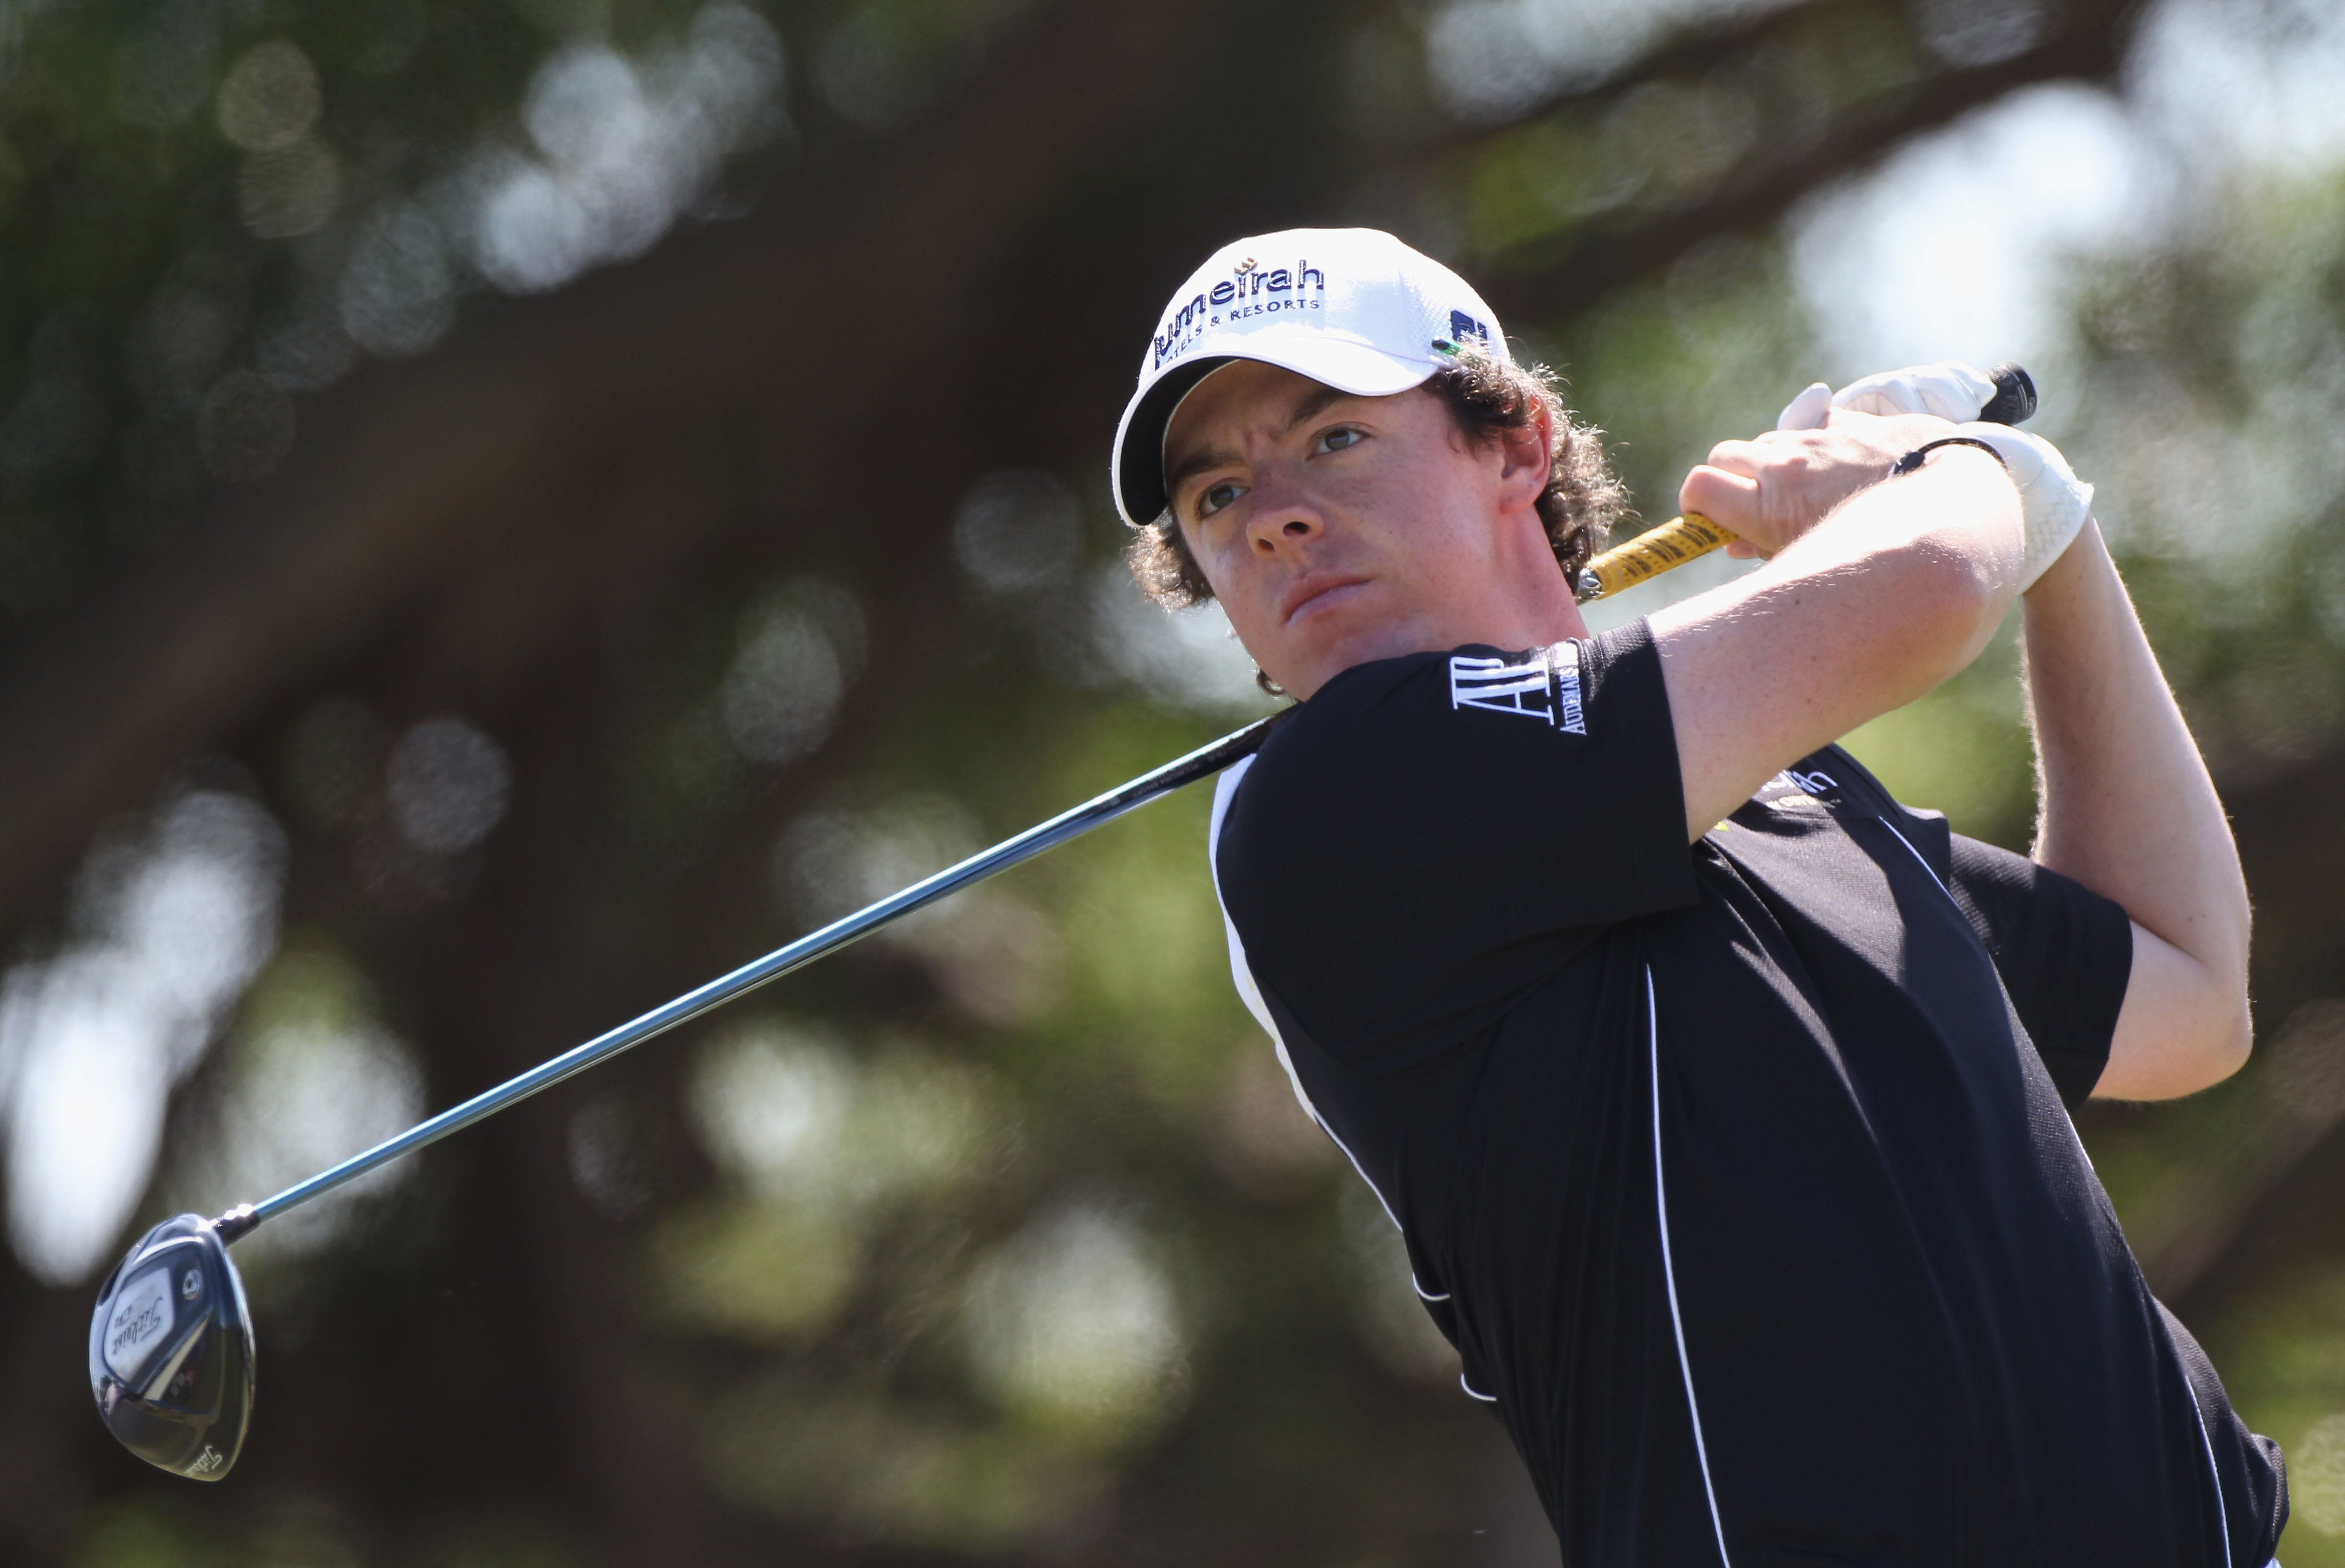 DORAL, FL - MARCH 13:  Rory McIlroy hits a shot during the final round of the 2011 WGC- Cadillac Championship at the TPC Blue Monster at the Doral Golf Resort and Spa on March 13, 2011 in Doral, Florida.  (Photo by Sam Greenwood/Getty Images)